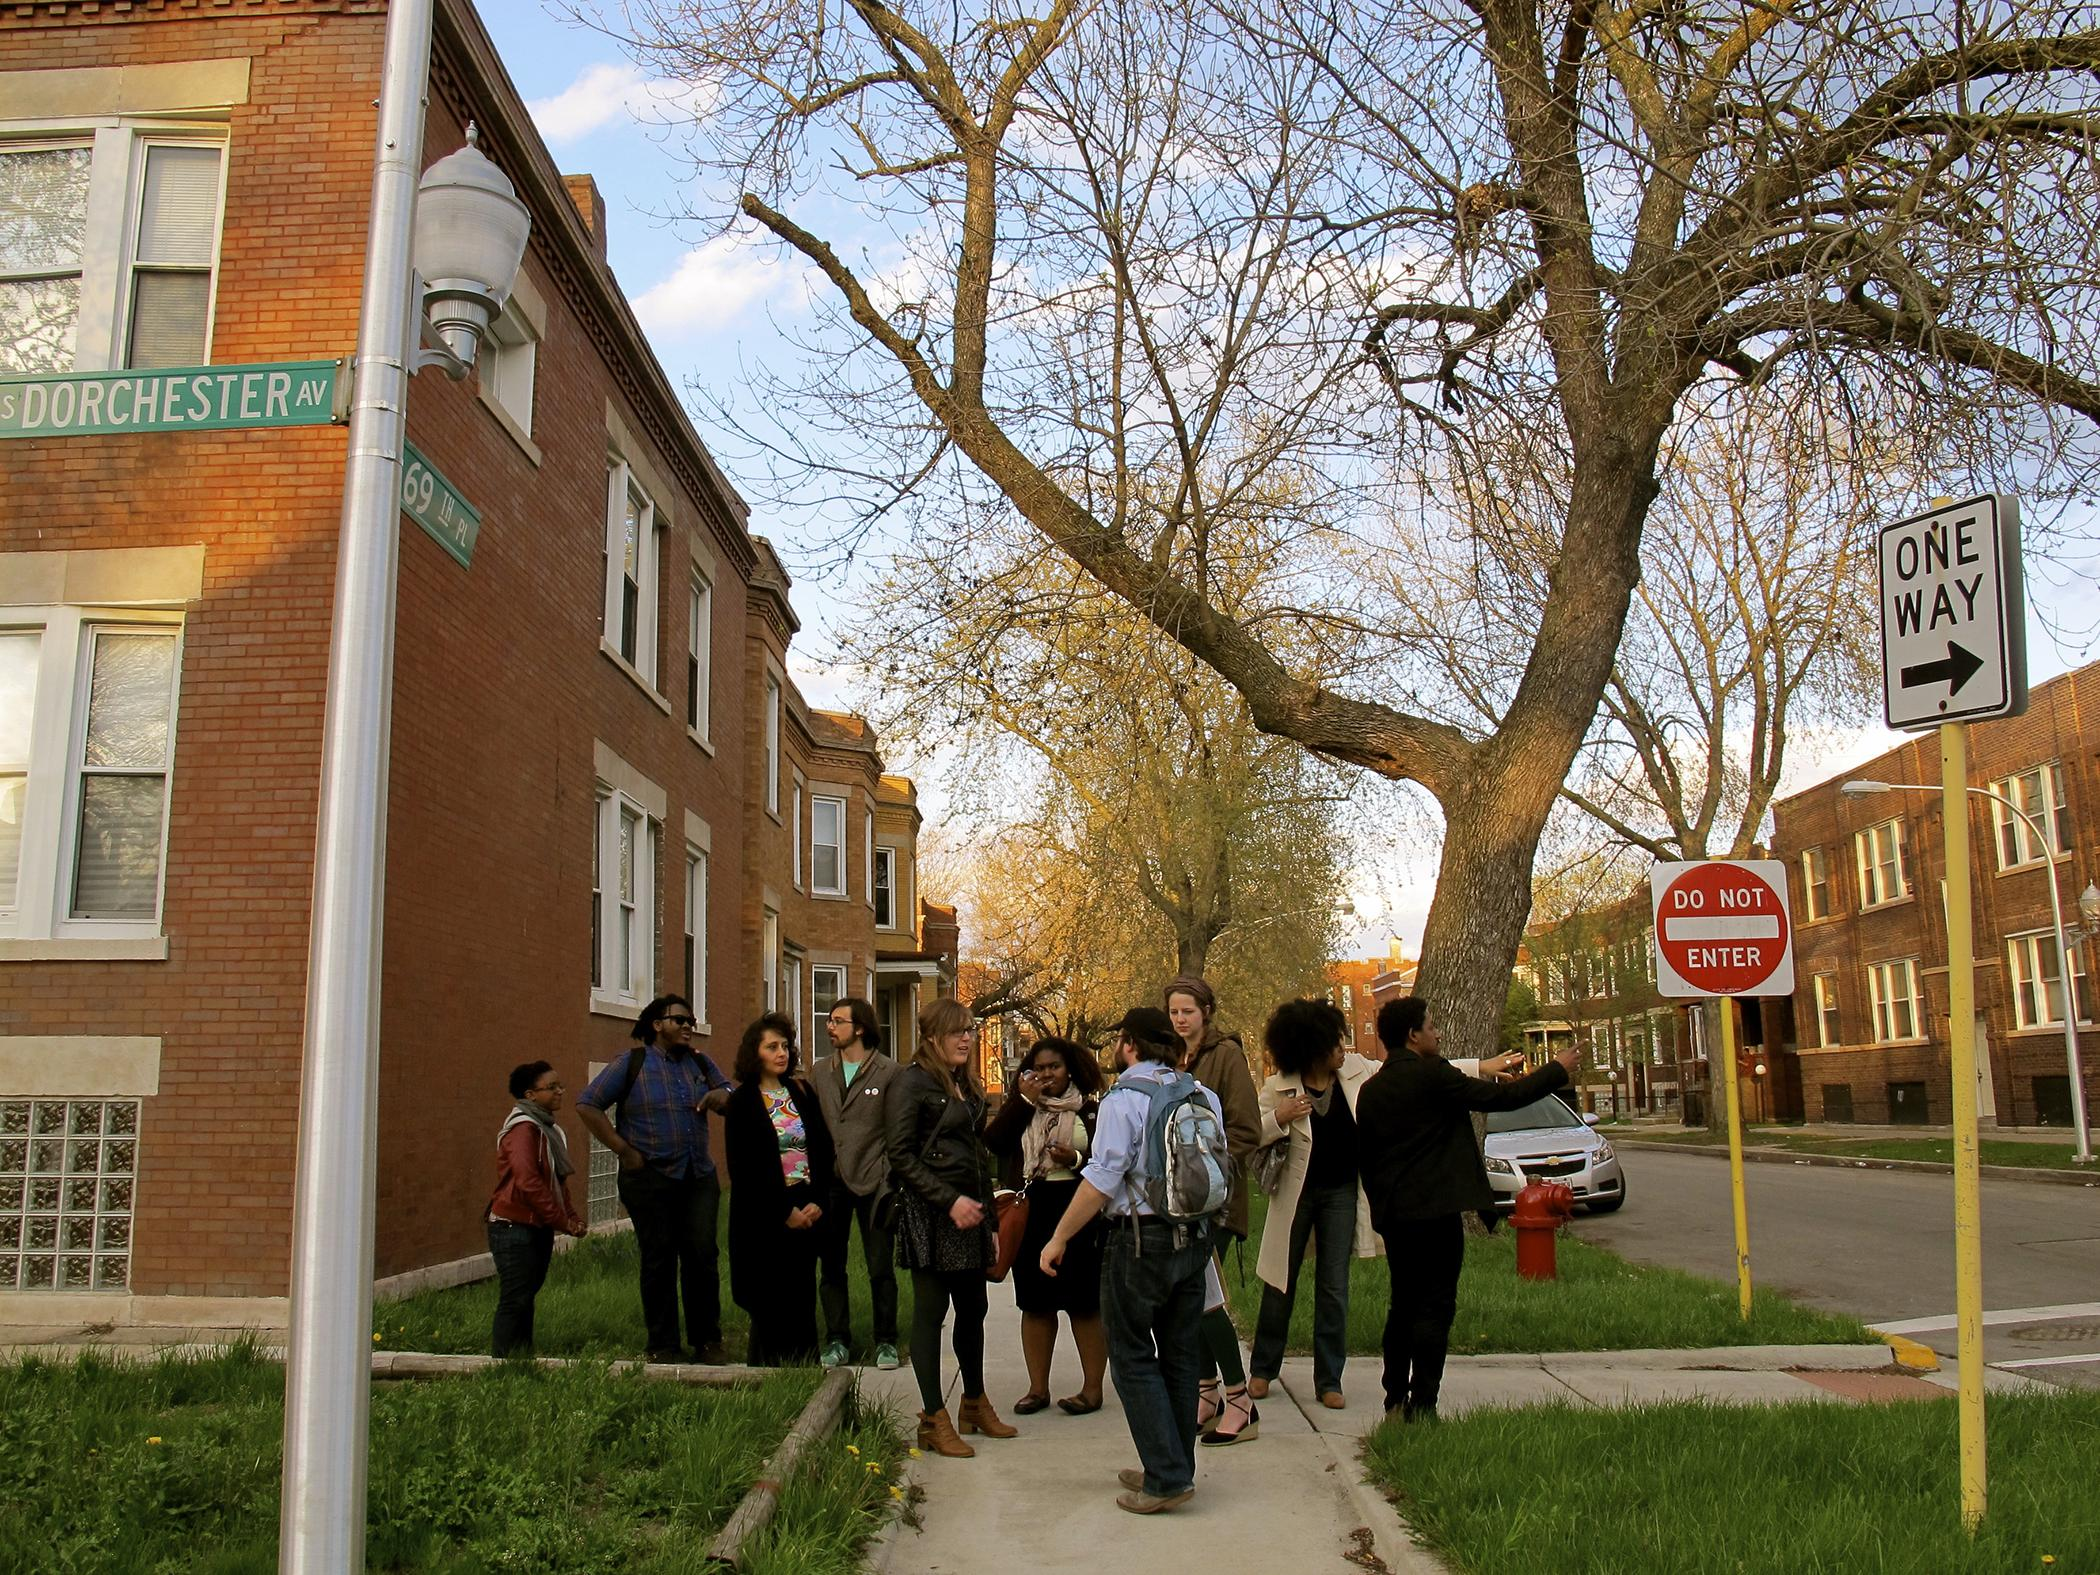 """A group of young people of different races are clustered at the end of a sidewalk as a man wearing a backpack leads them; the street signs in the image say """"Dorchester Avenue"""" and """"69th Place."""""""